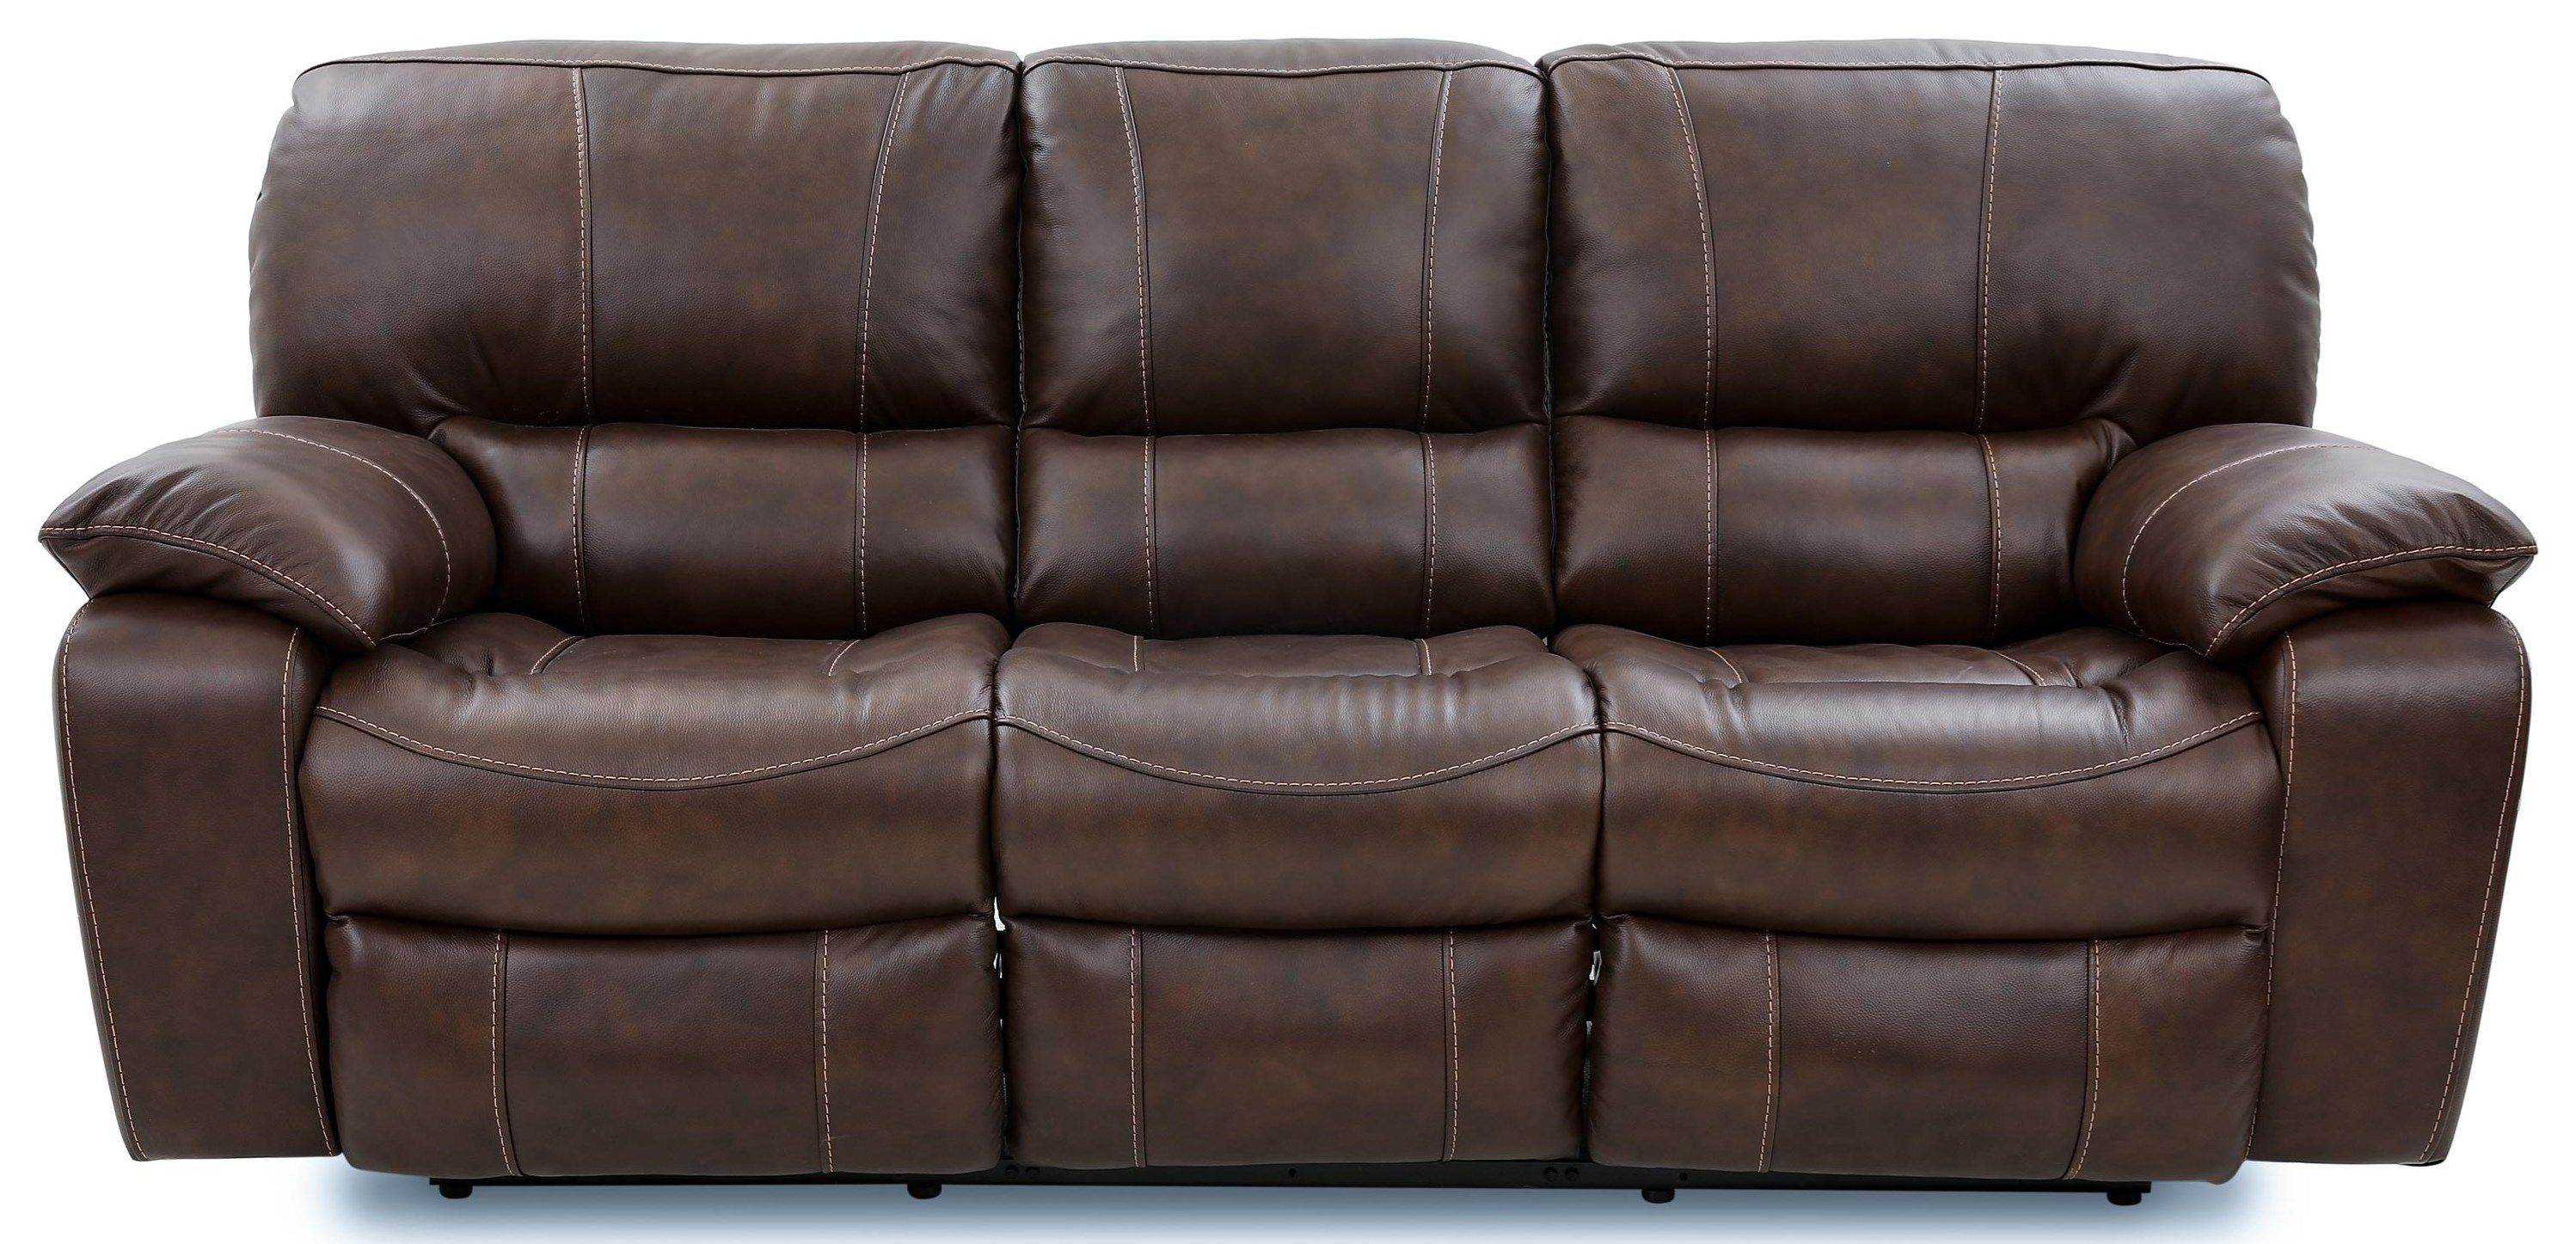 UX8625M Reclining Sofa by Cheers at Beck's Furniture